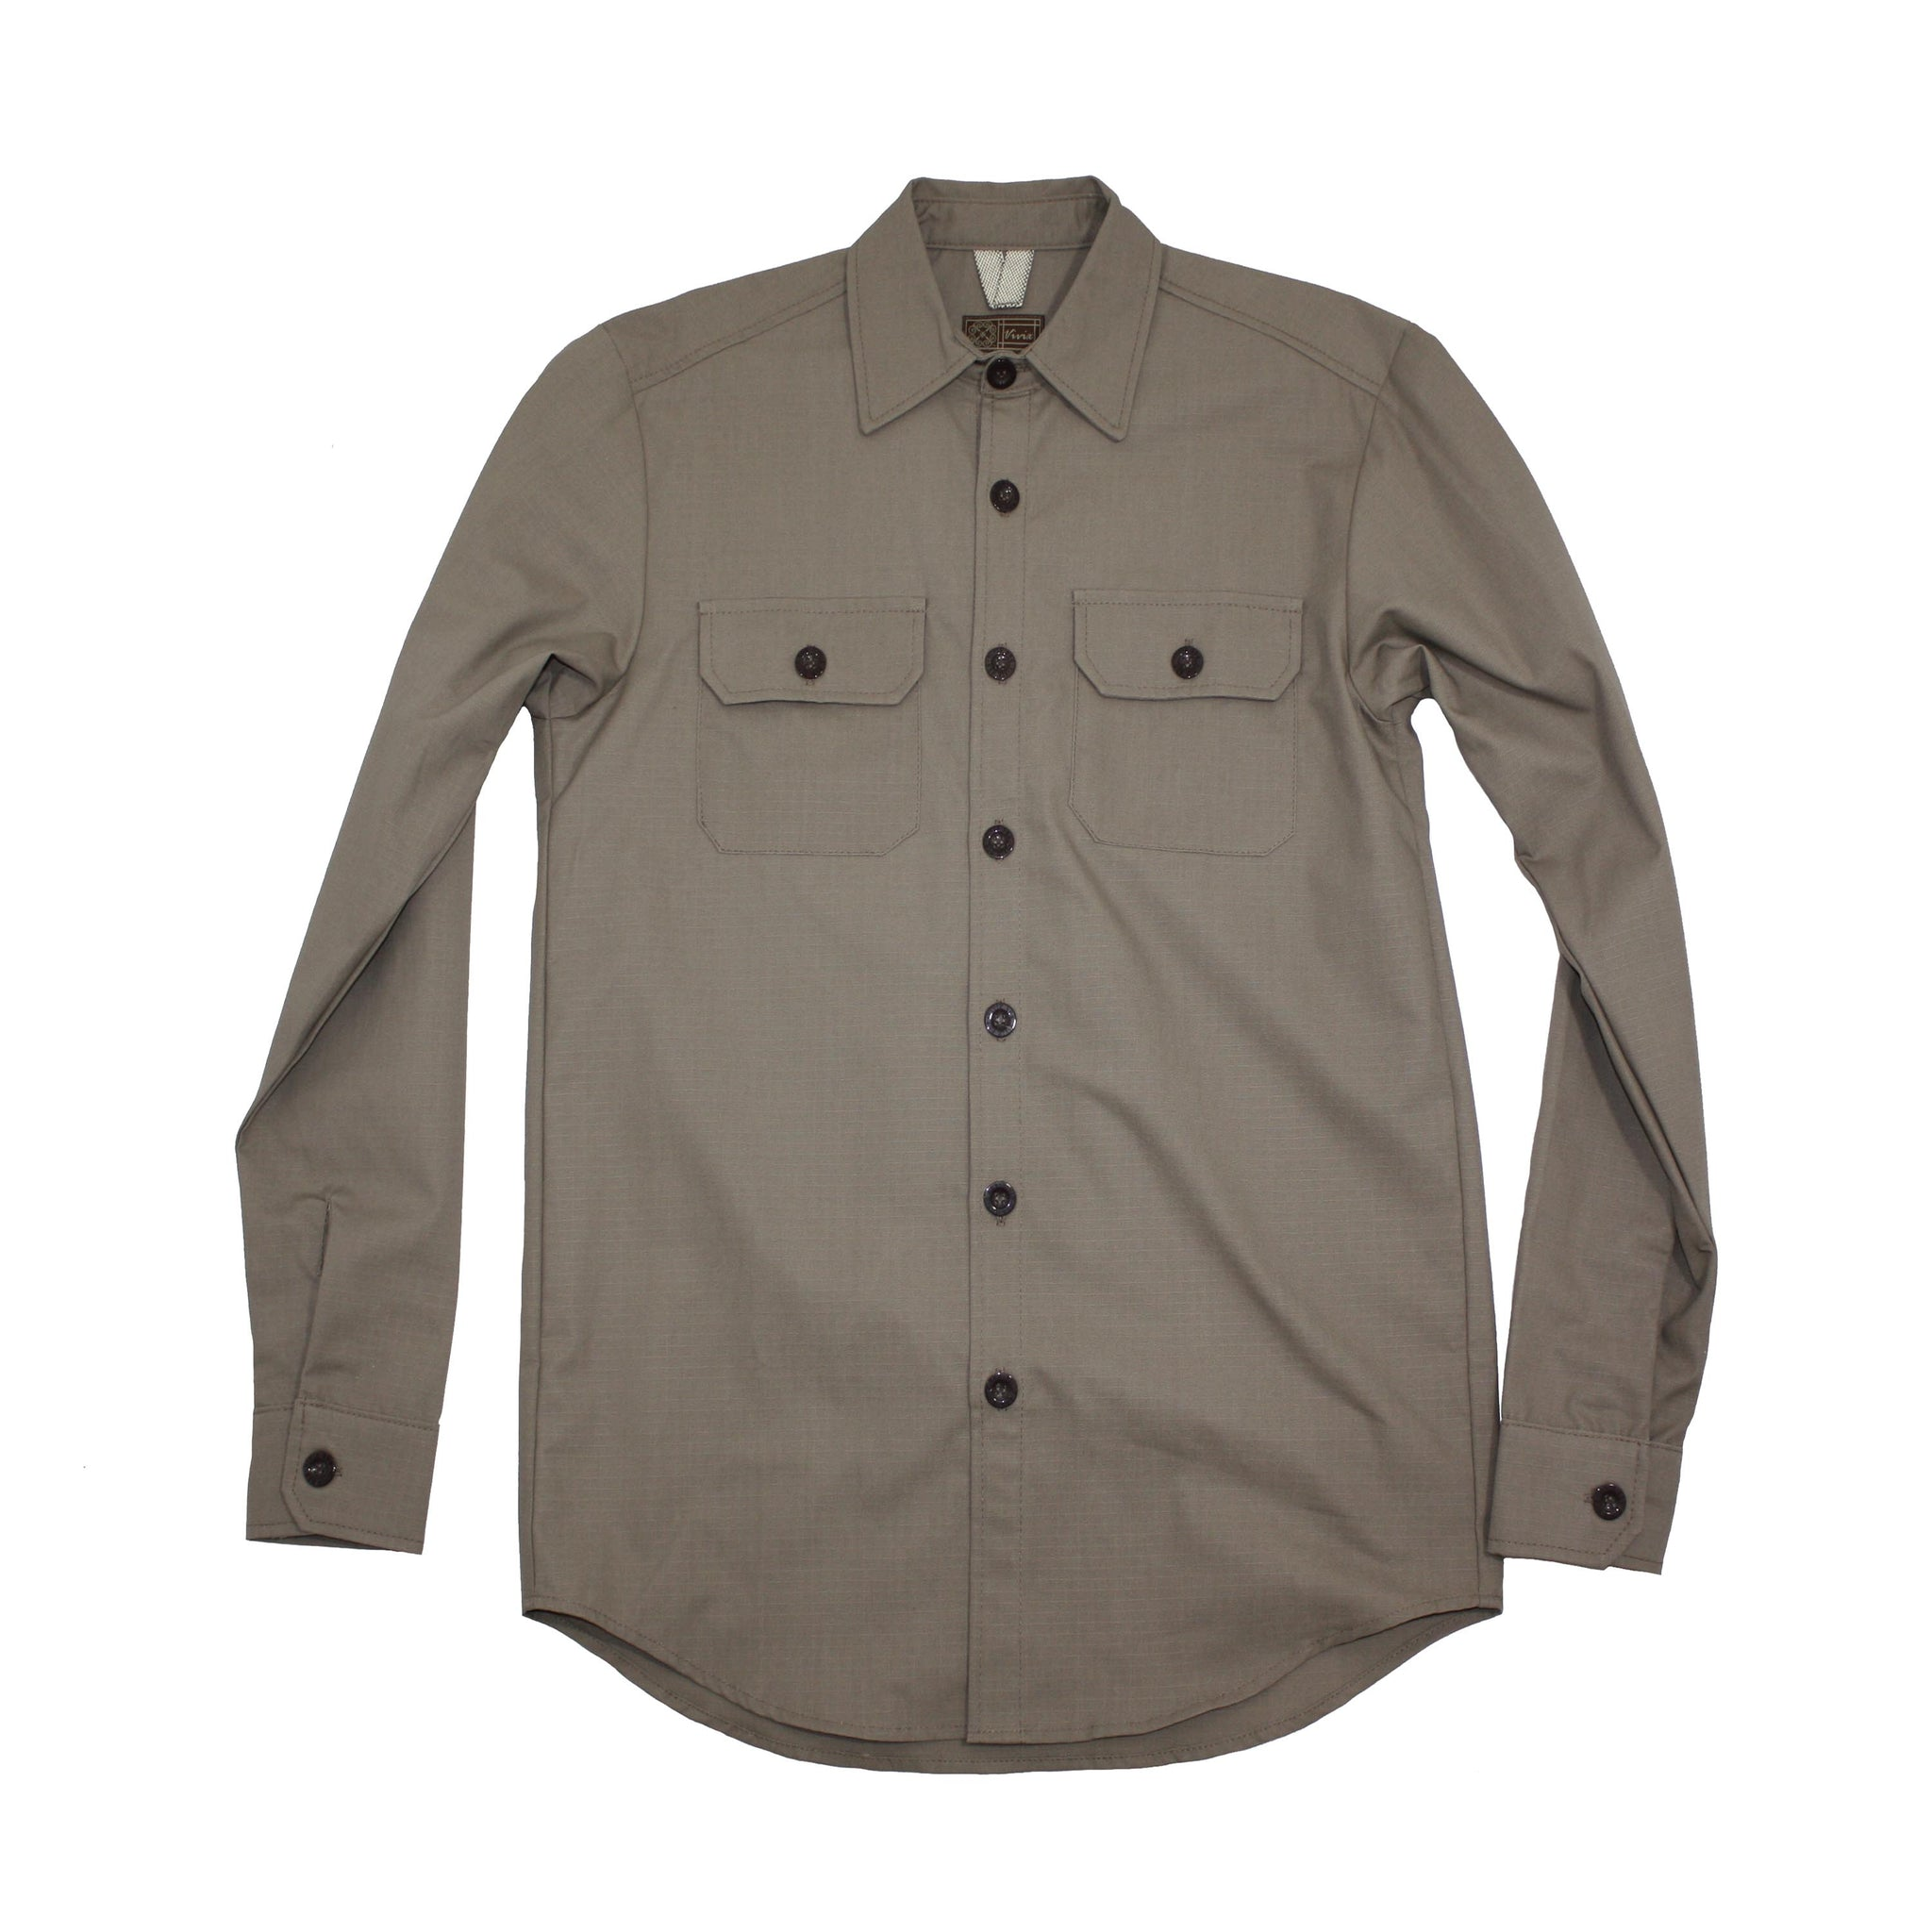 American made mens button up jacket